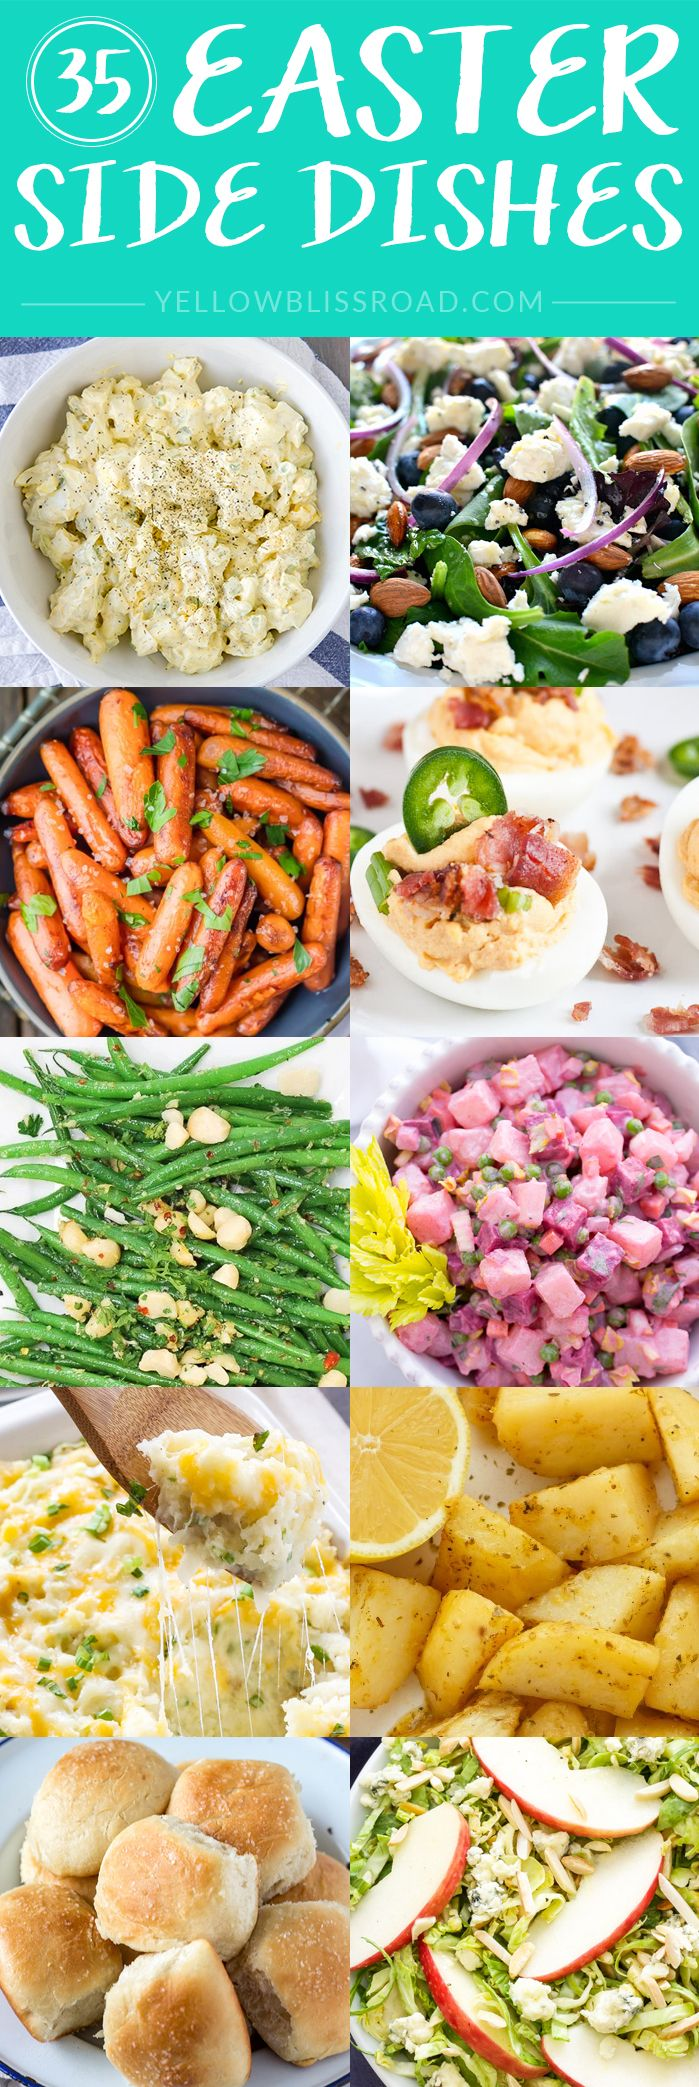 With Easter quickly sneaking up on us, it's time to start planning for the big holiday meal! You might think it's all about the main course, but really, the side dishes are what makes a meal really fantastic. Whether your Easter dinner features ham, fish, lamb or any other entree, these new Easter side dishes I'm …